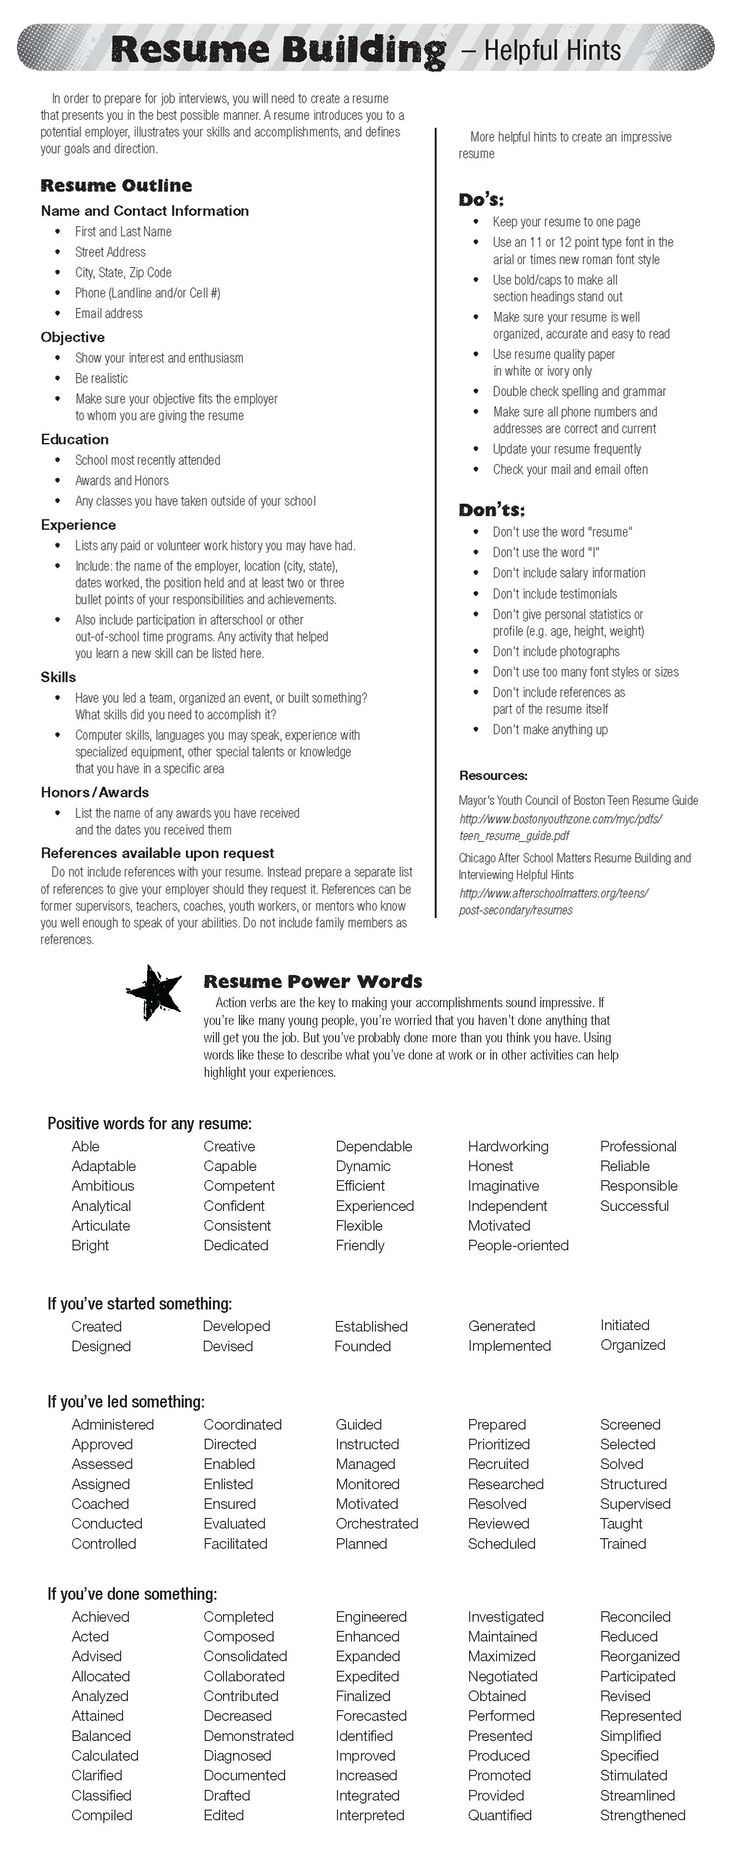 Picnictoimpeachus  Pretty  Ideas About Resume On Pinterest  Cv Format Resume Cv And  With Fair  Ideas About Resume On Pinterest  Cv Format Resume Cv And Resume Templates With Astonishing Fast Food Resume Examples Also Best Place To Post Resume Online In Addition Premade Resume And Computer Science Resume Objective As Well As Electrician Resumes Additionally Professional Customer Service Resume From Pinterestcom With Picnictoimpeachus  Fair  Ideas About Resume On Pinterest  Cv Format Resume Cv And  With Astonishing  Ideas About Resume On Pinterest  Cv Format Resume Cv And Resume Templates And Pretty Fast Food Resume Examples Also Best Place To Post Resume Online In Addition Premade Resume From Pinterestcom